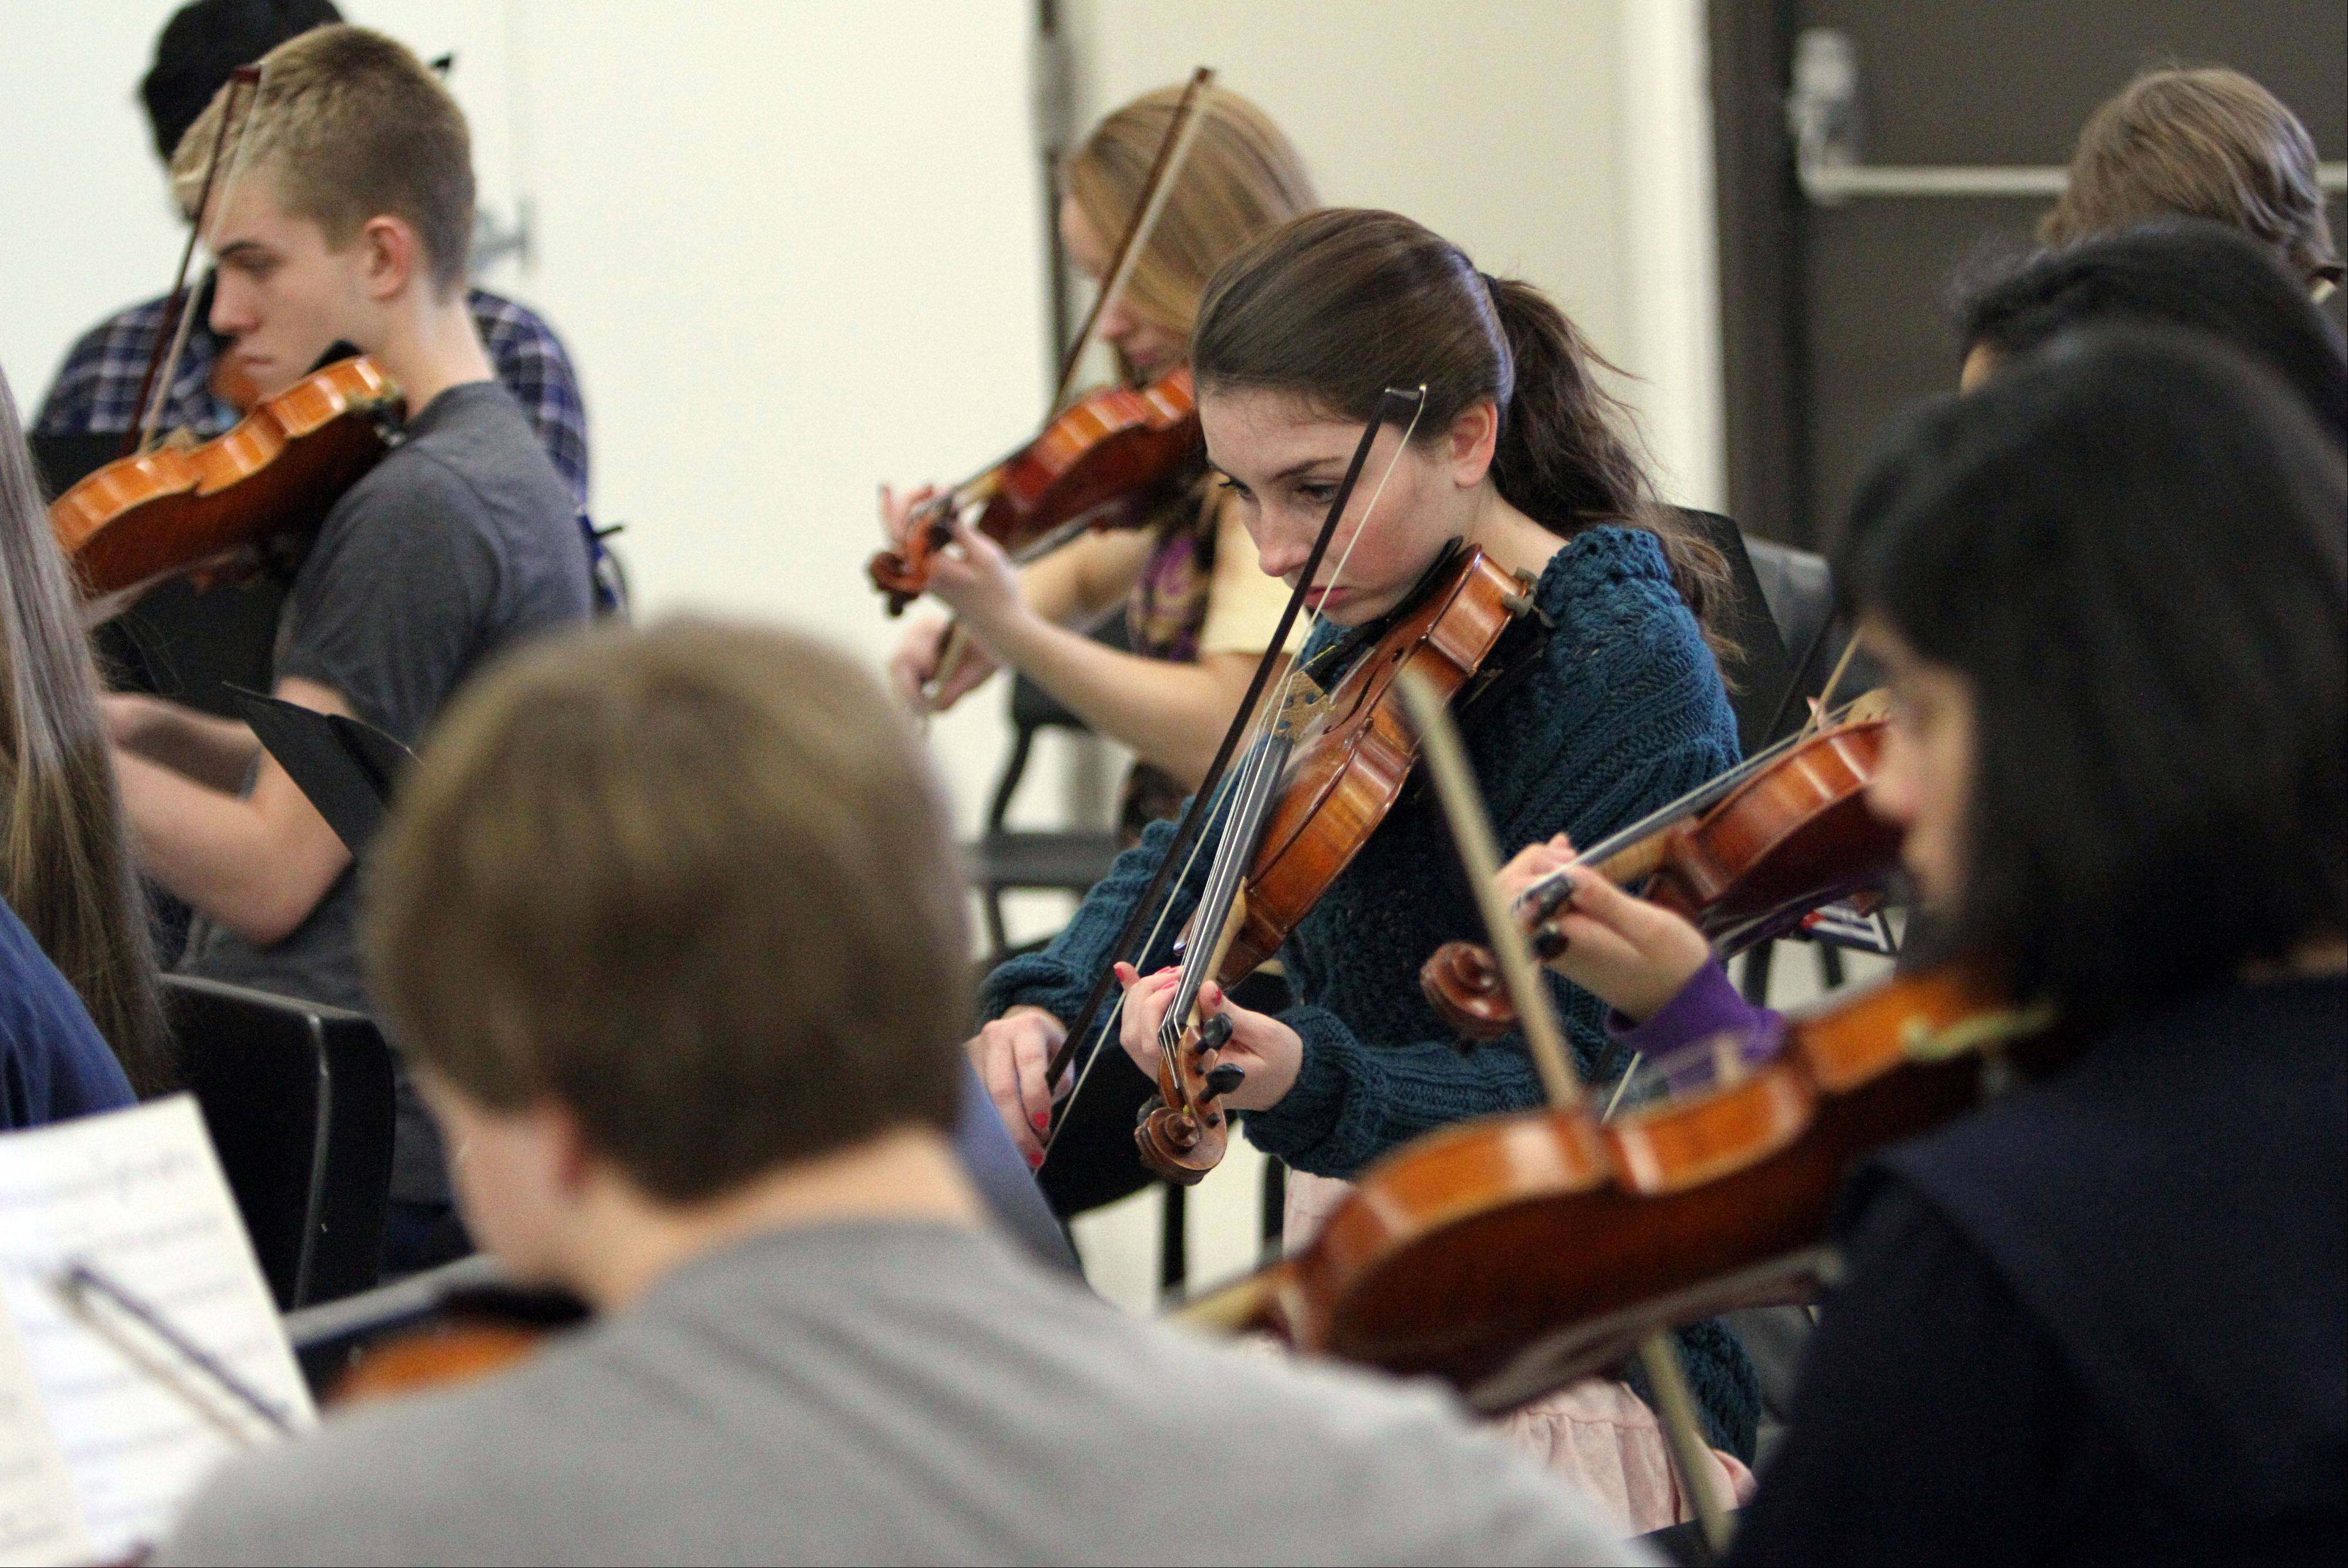 Libertyville High School orchestra members rehearse for their trip to Cuba. The students will spend spring break in the small Caribbean nation, which has been at political odds with the United States for decades.